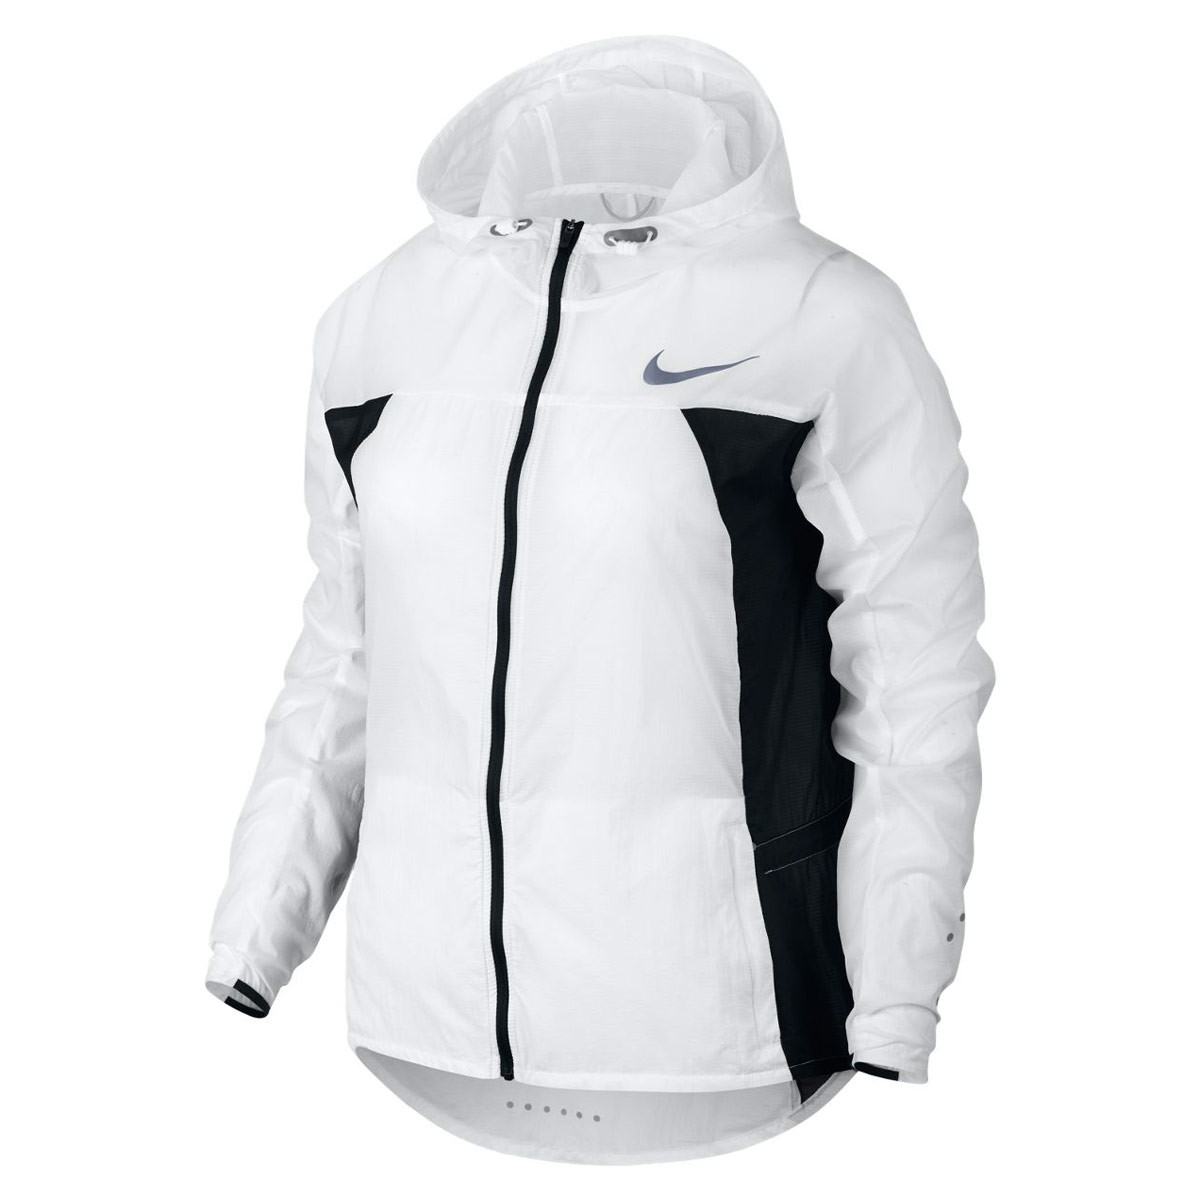 Jacket Course Pour Running Light Vestes Nike Impossibly Hooded wpAq6p